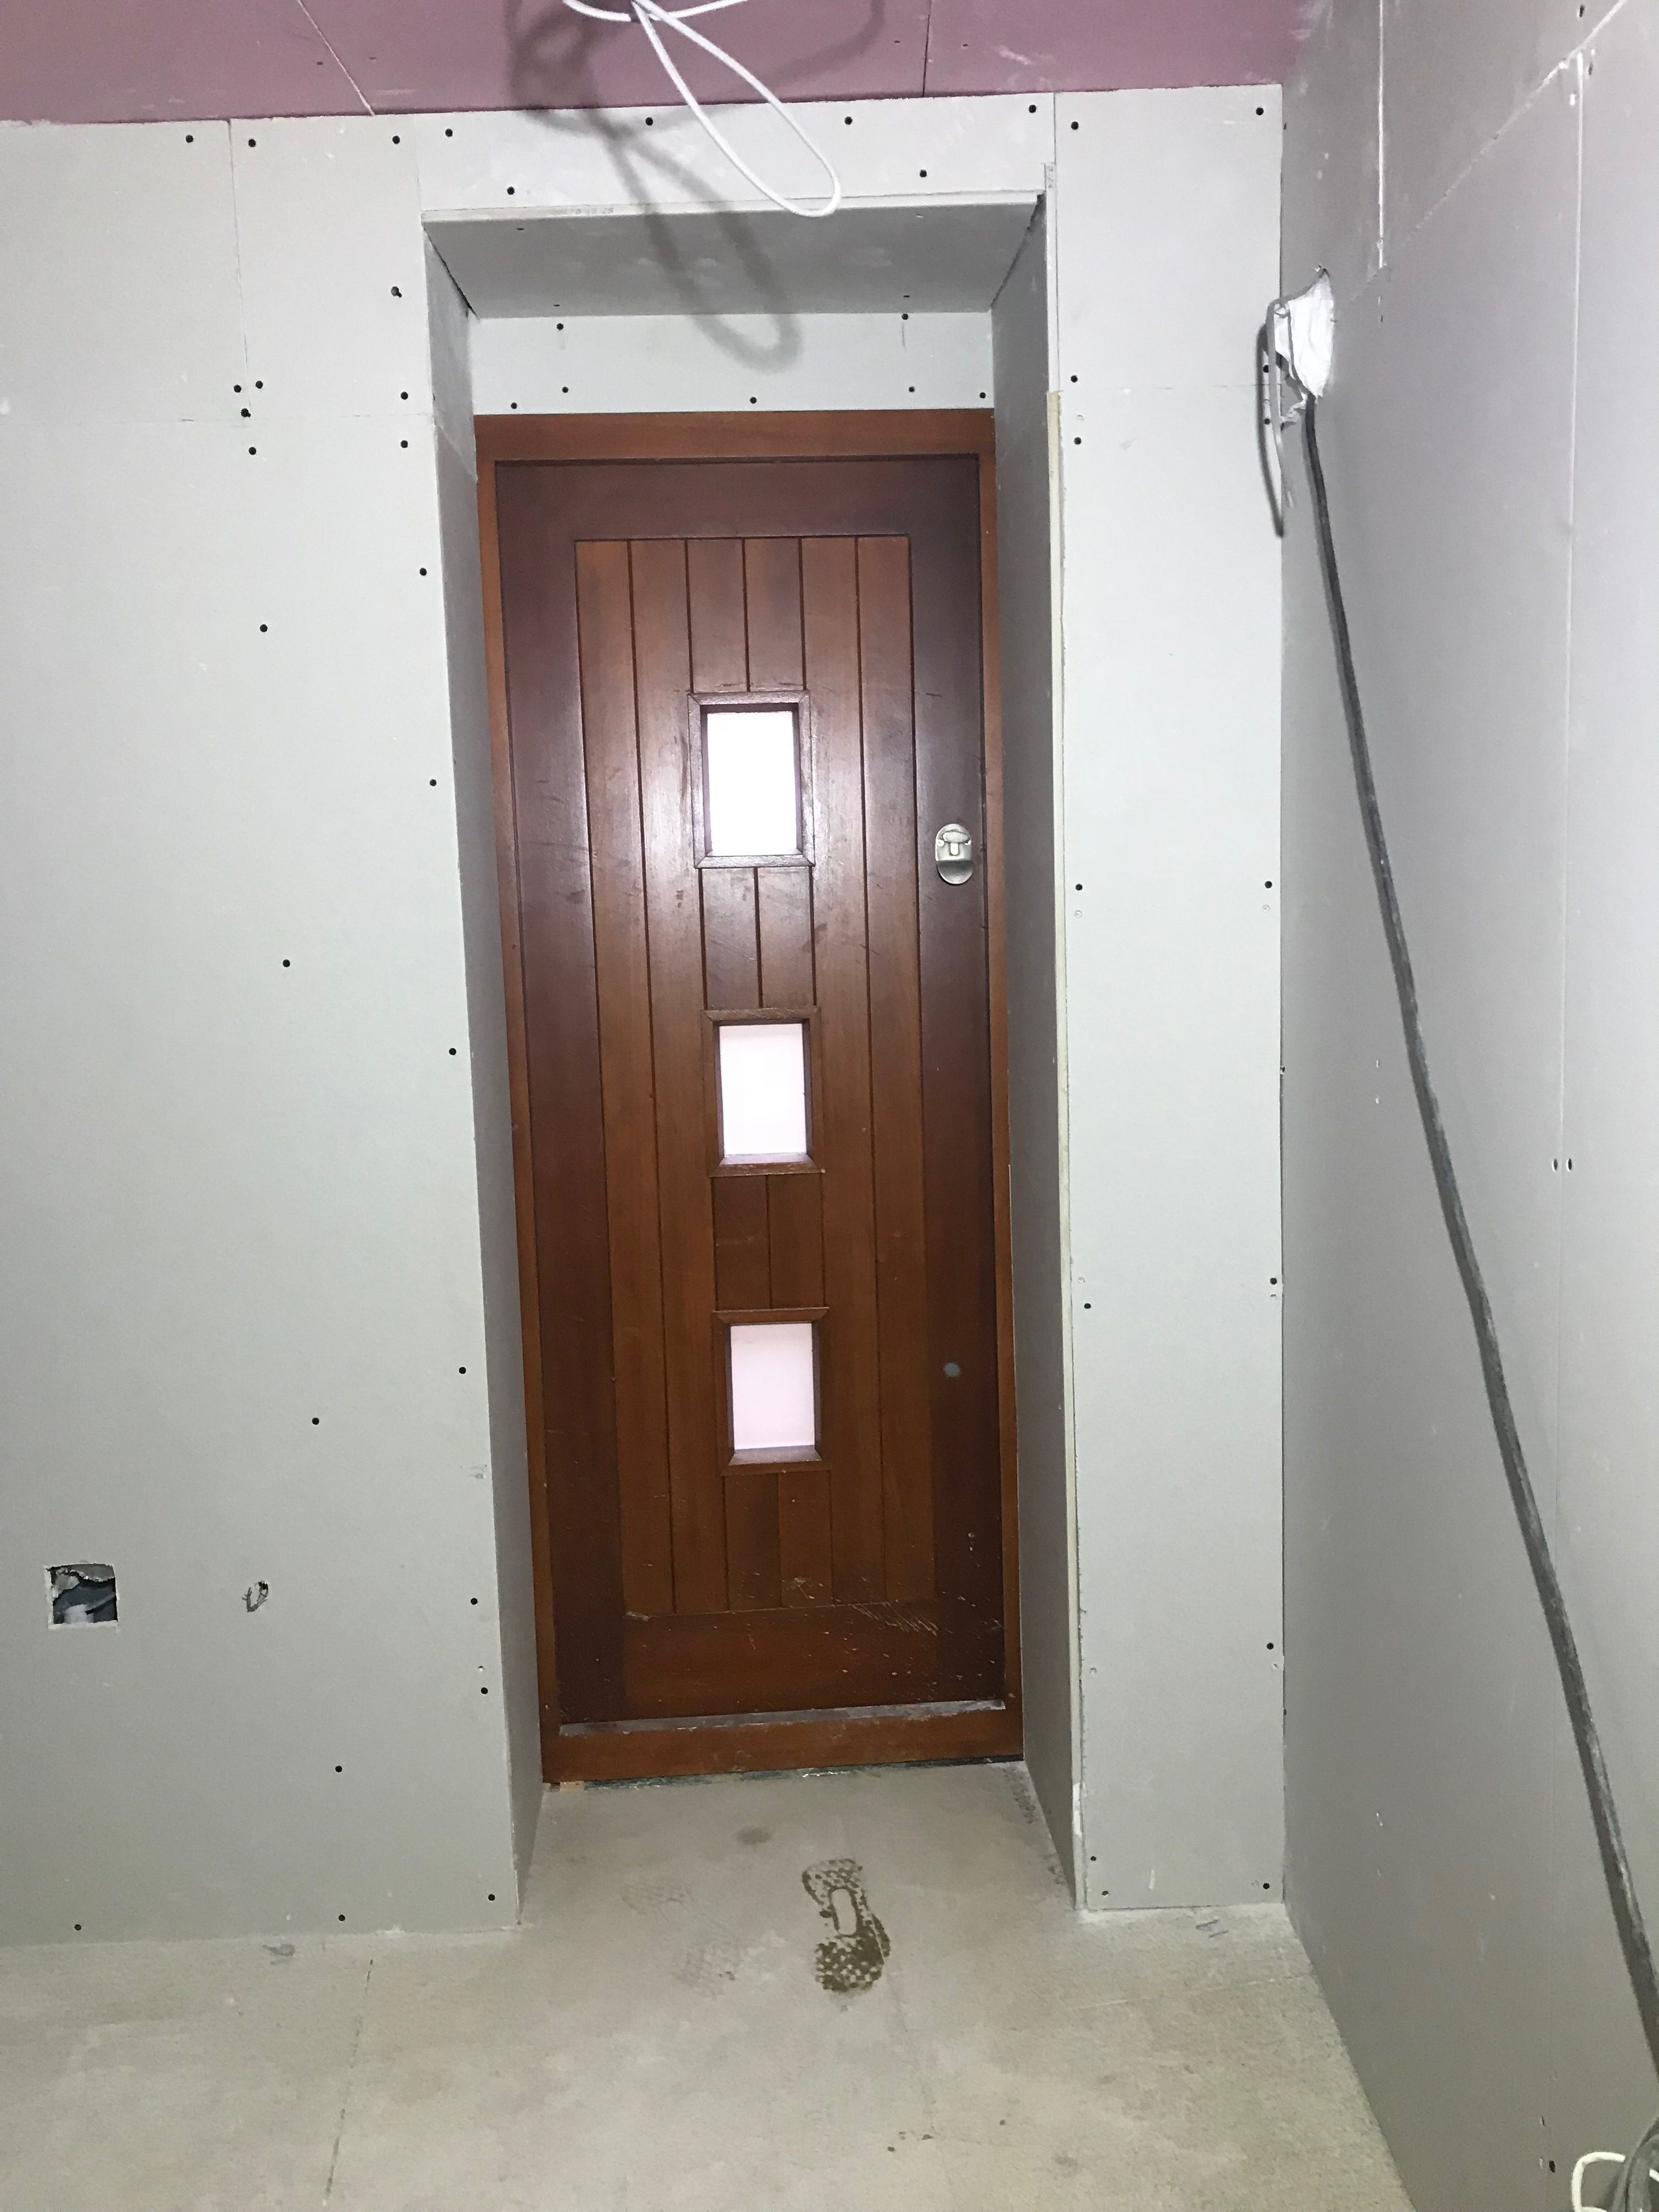 New door leading to external staircase